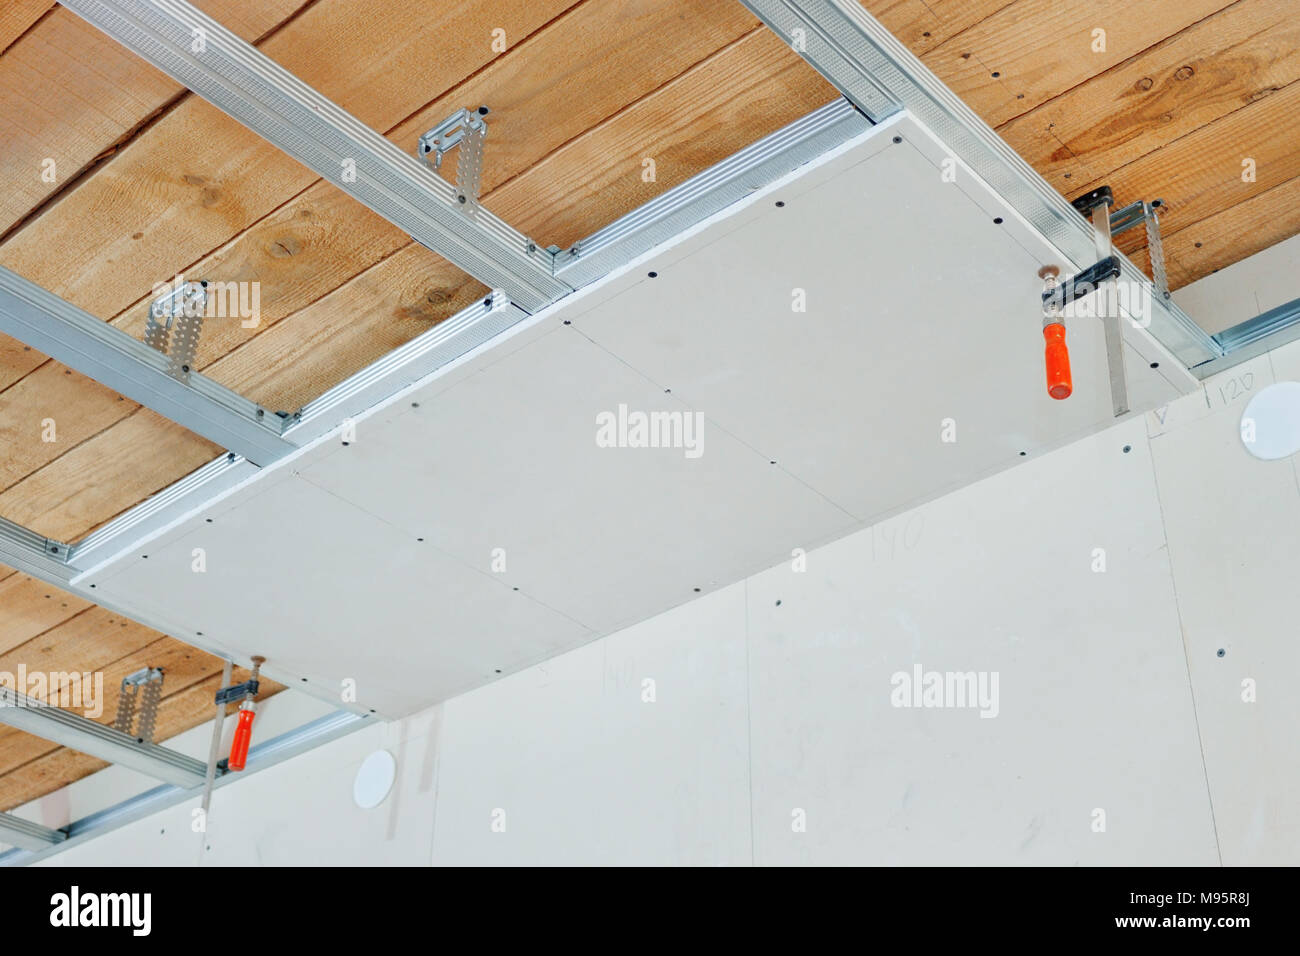 Gypsum Board Ceiling House Construction Stock Photos  Gypsum Board Ceiling House Construction